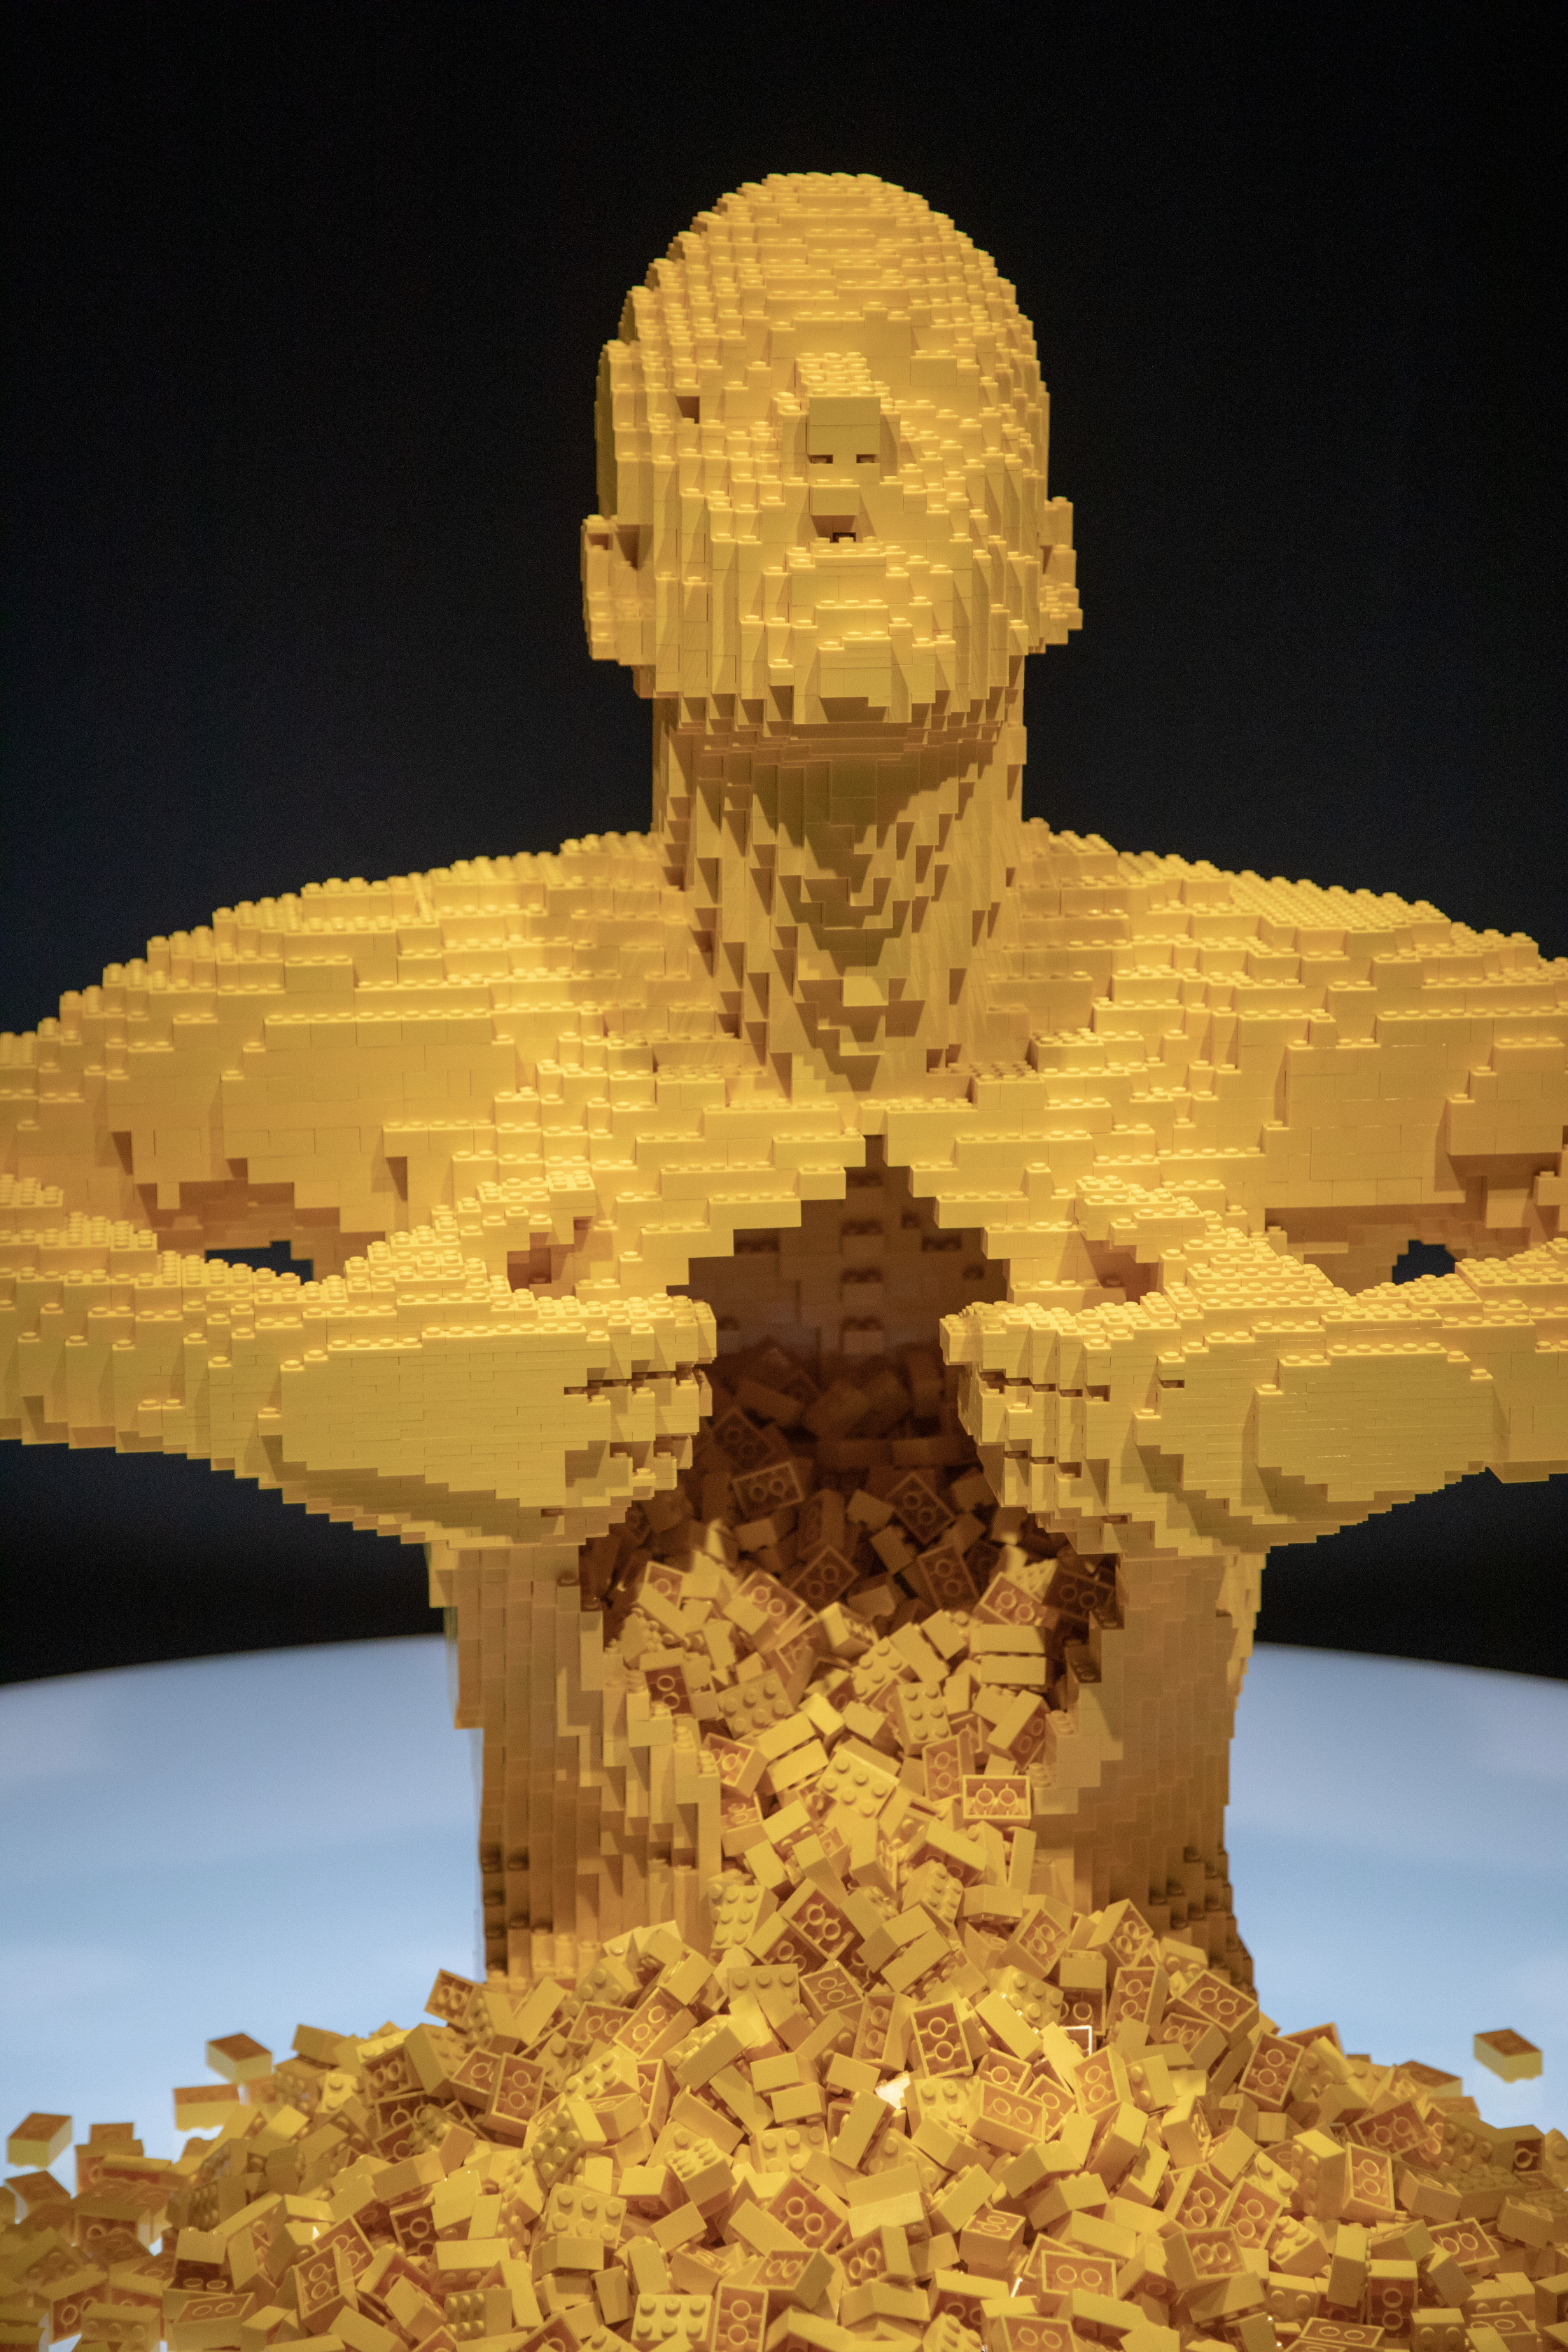 "The fan favorite Yellow is a life-size sculpture of a man ripping his chest open with thousands of yellow LEGO bricks cascading from the cavity. (Yellow has gained pop-culture fame appearing on fashion labels, album covers and even in Lady Gaga's music video ""G.U.Y."") (PHOTO CREDIT: JerSean Golatt/Perot Museum of Nature and Science)"